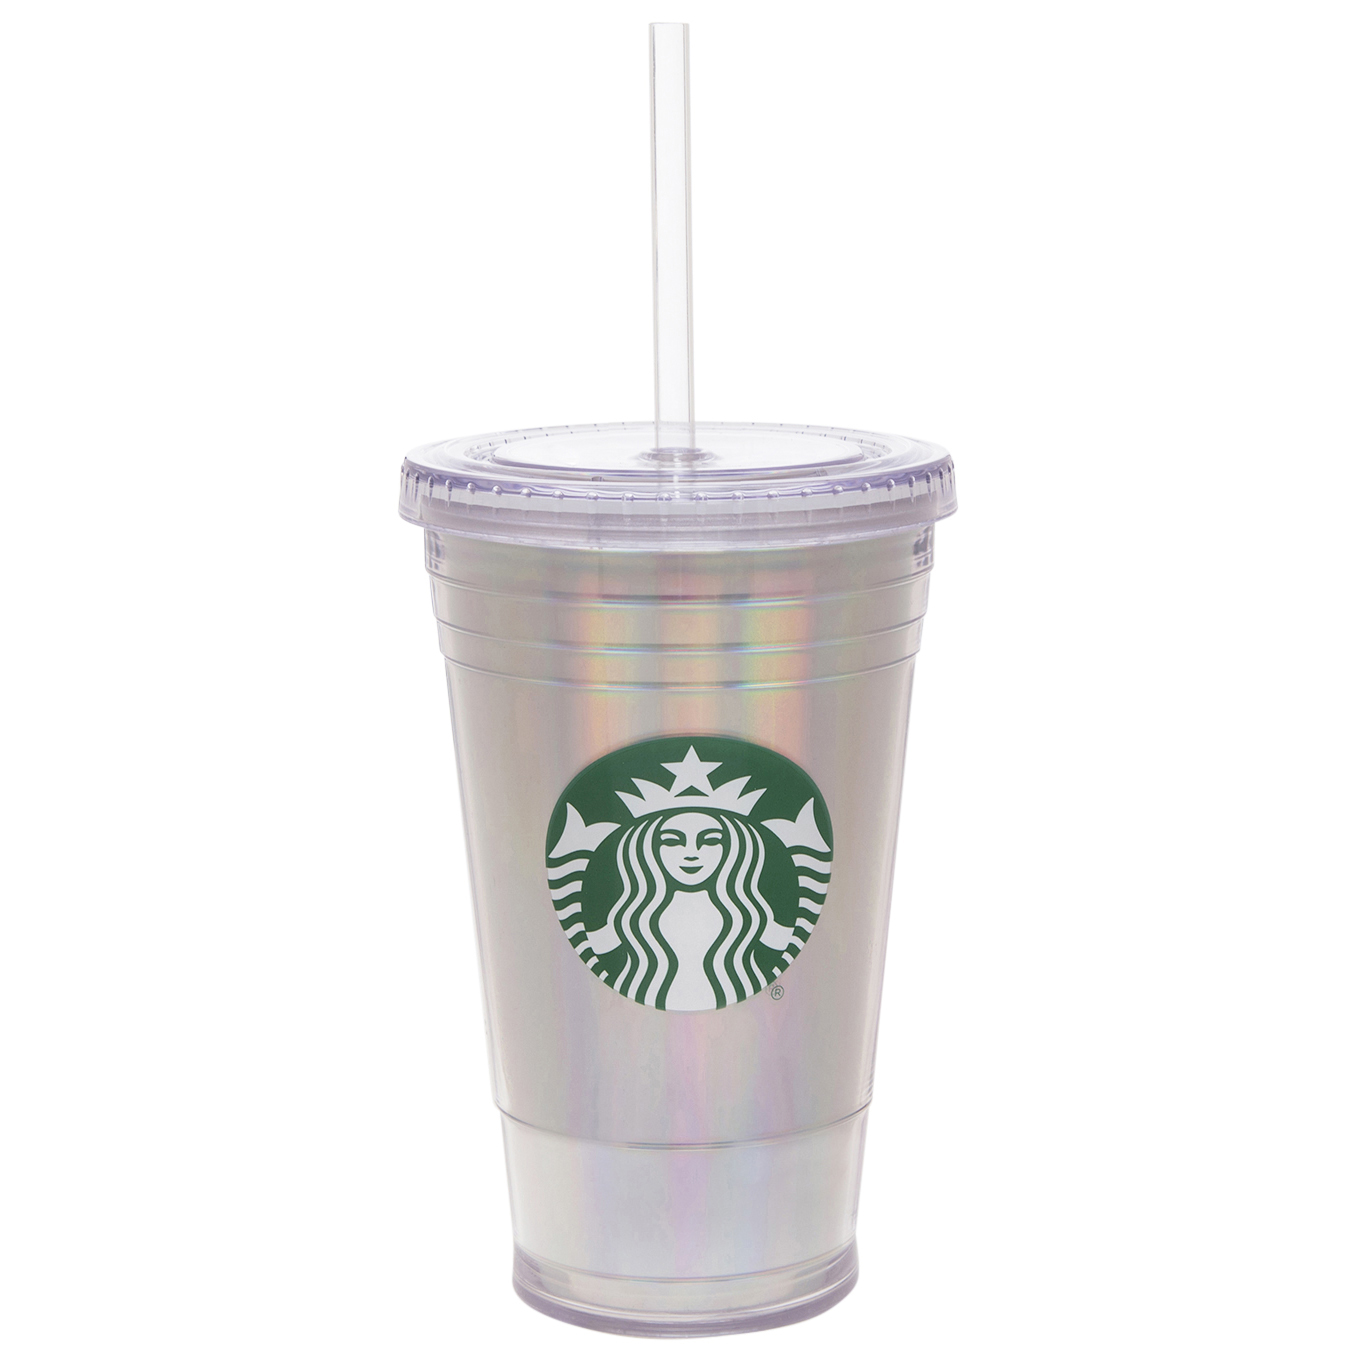 Starbucks 16 Ounce Tumbler with Straw Iridescent, 1 Each